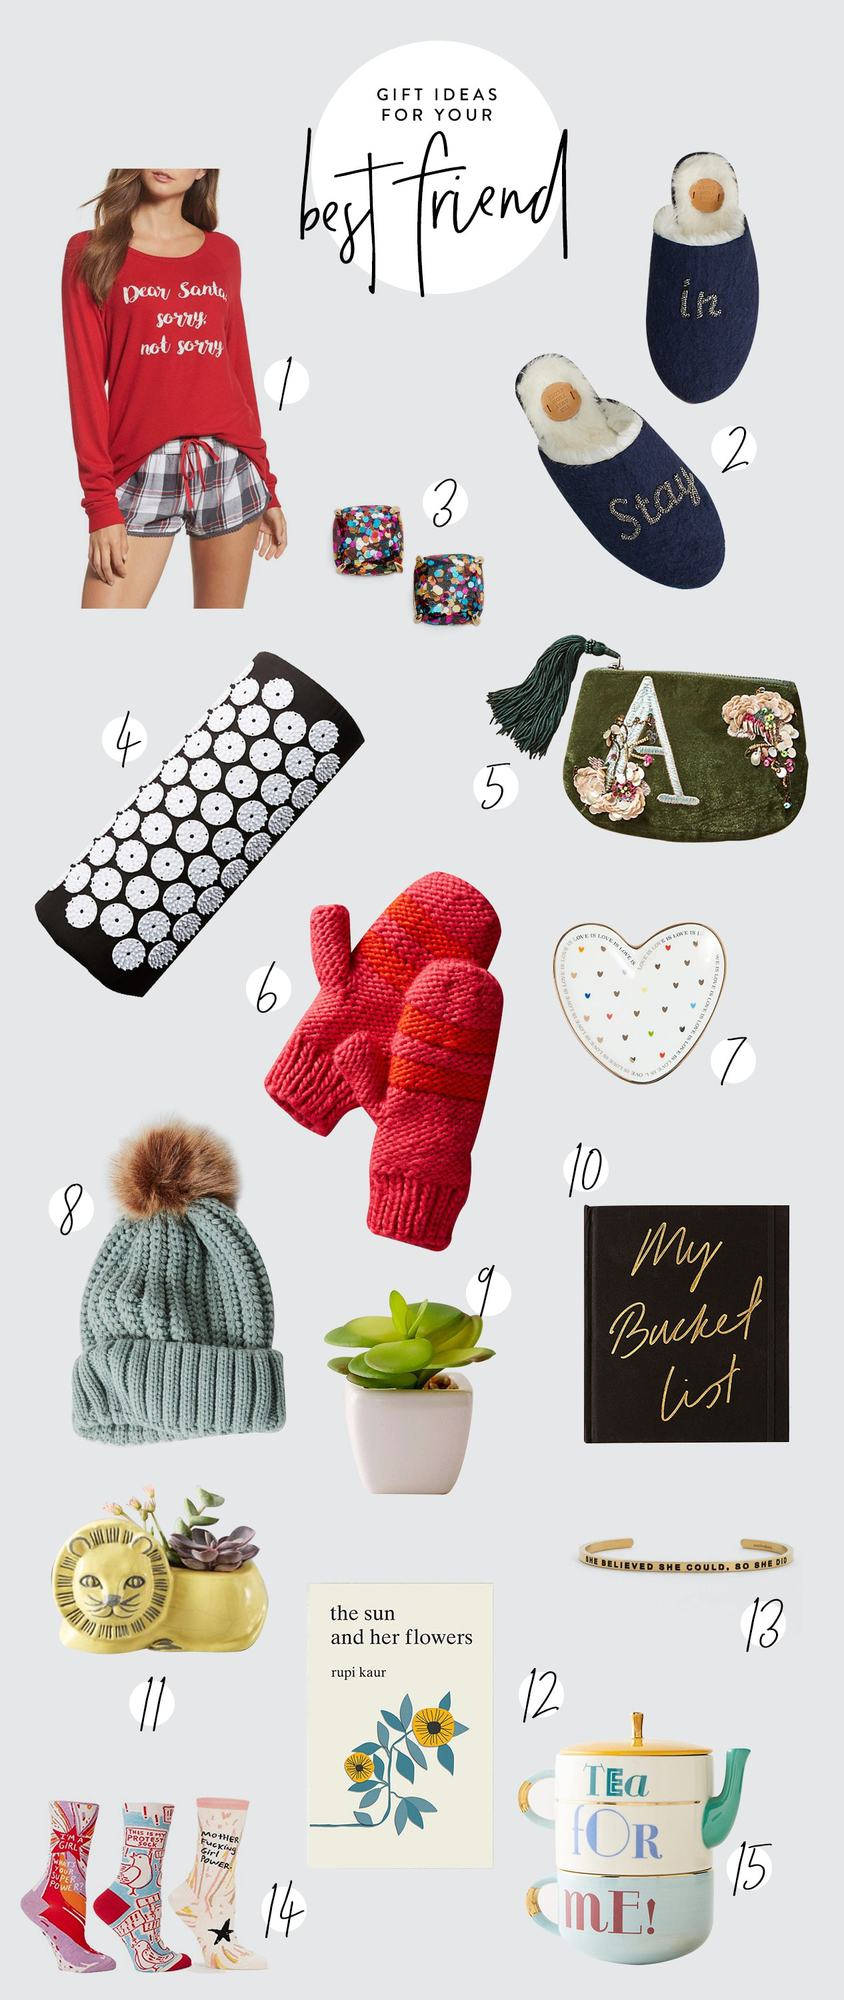 We know how important your best friend is to you, so that's why we rounded up the best gifts for best friends. Buy your bestie one of these fun and thoughtful gifts and you're sure to put a smile on her face!